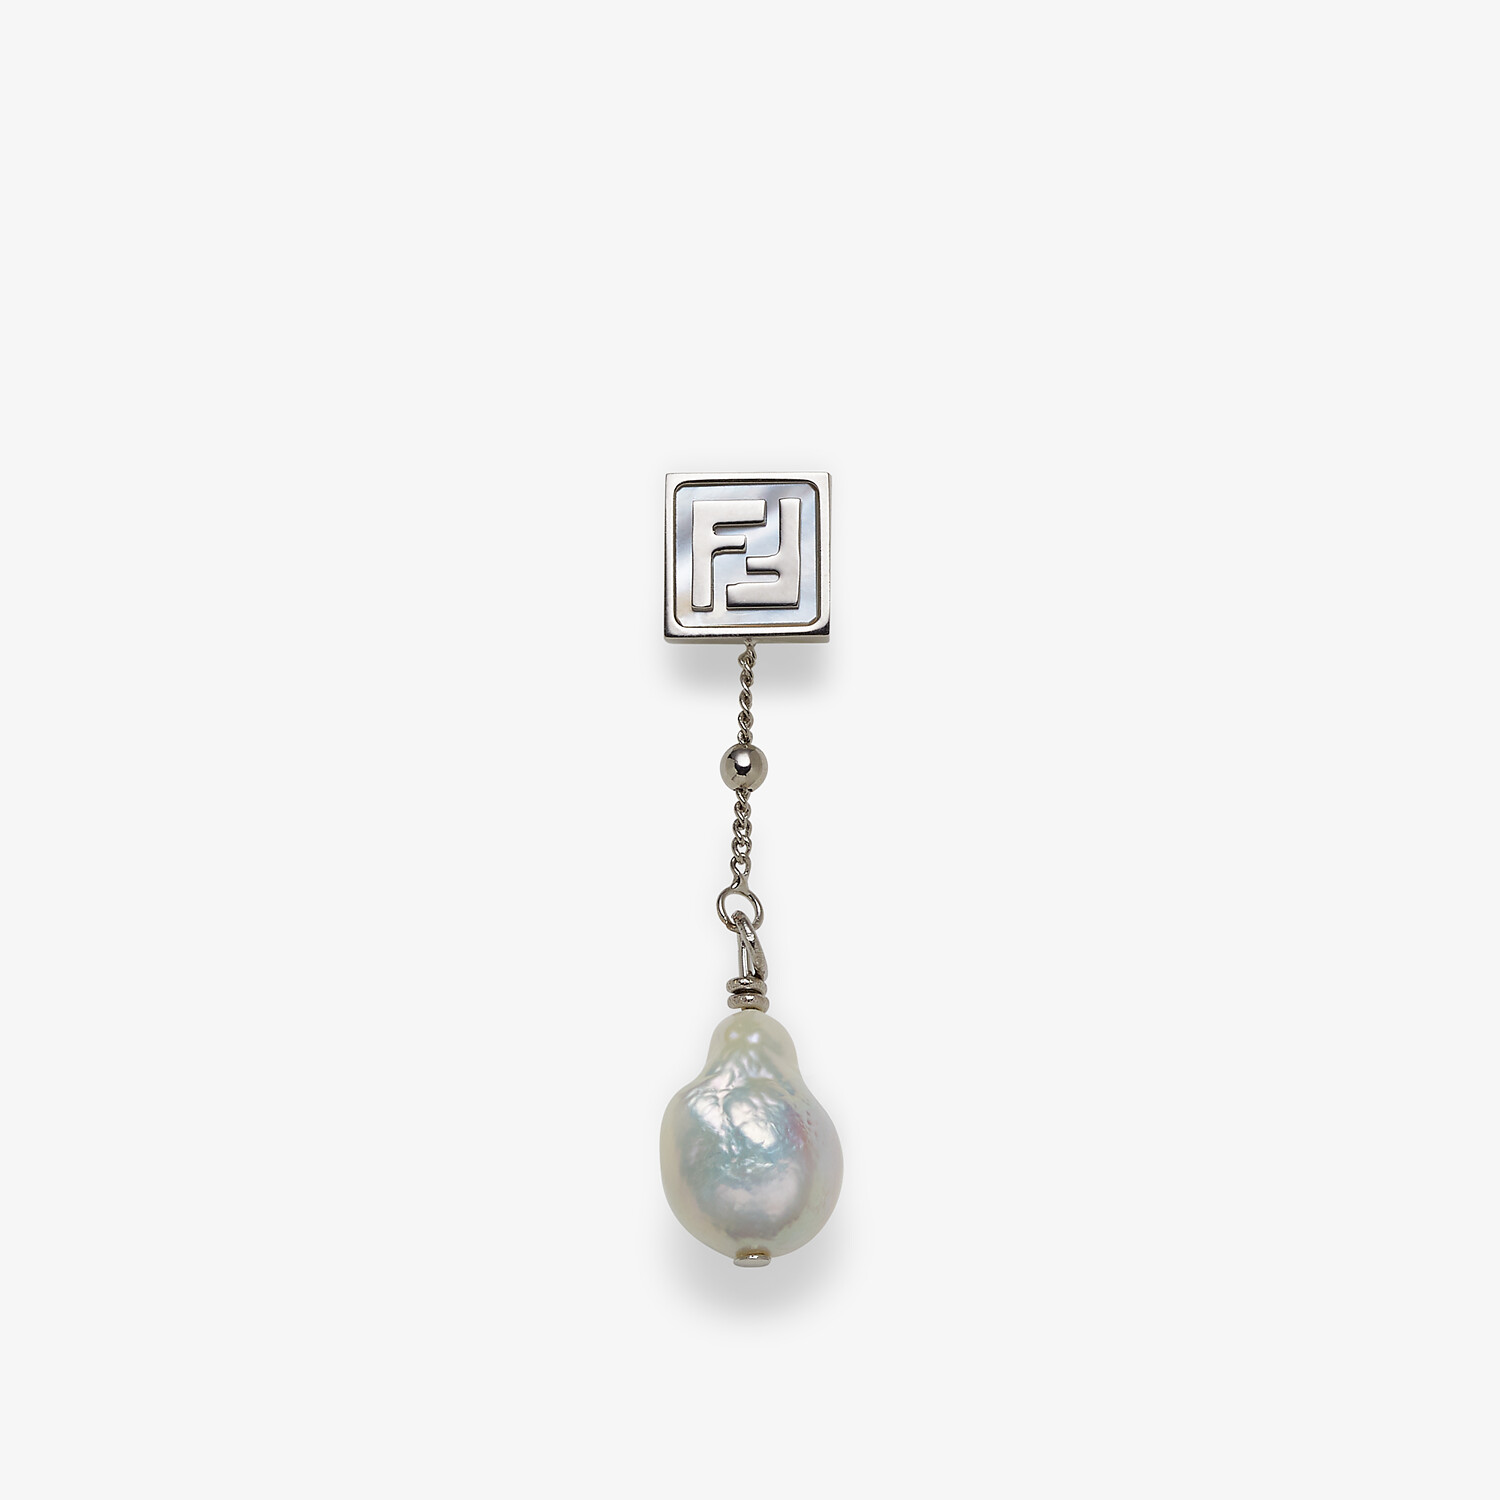 FENDI EARRING - Silver-colored earring - view 1 detail